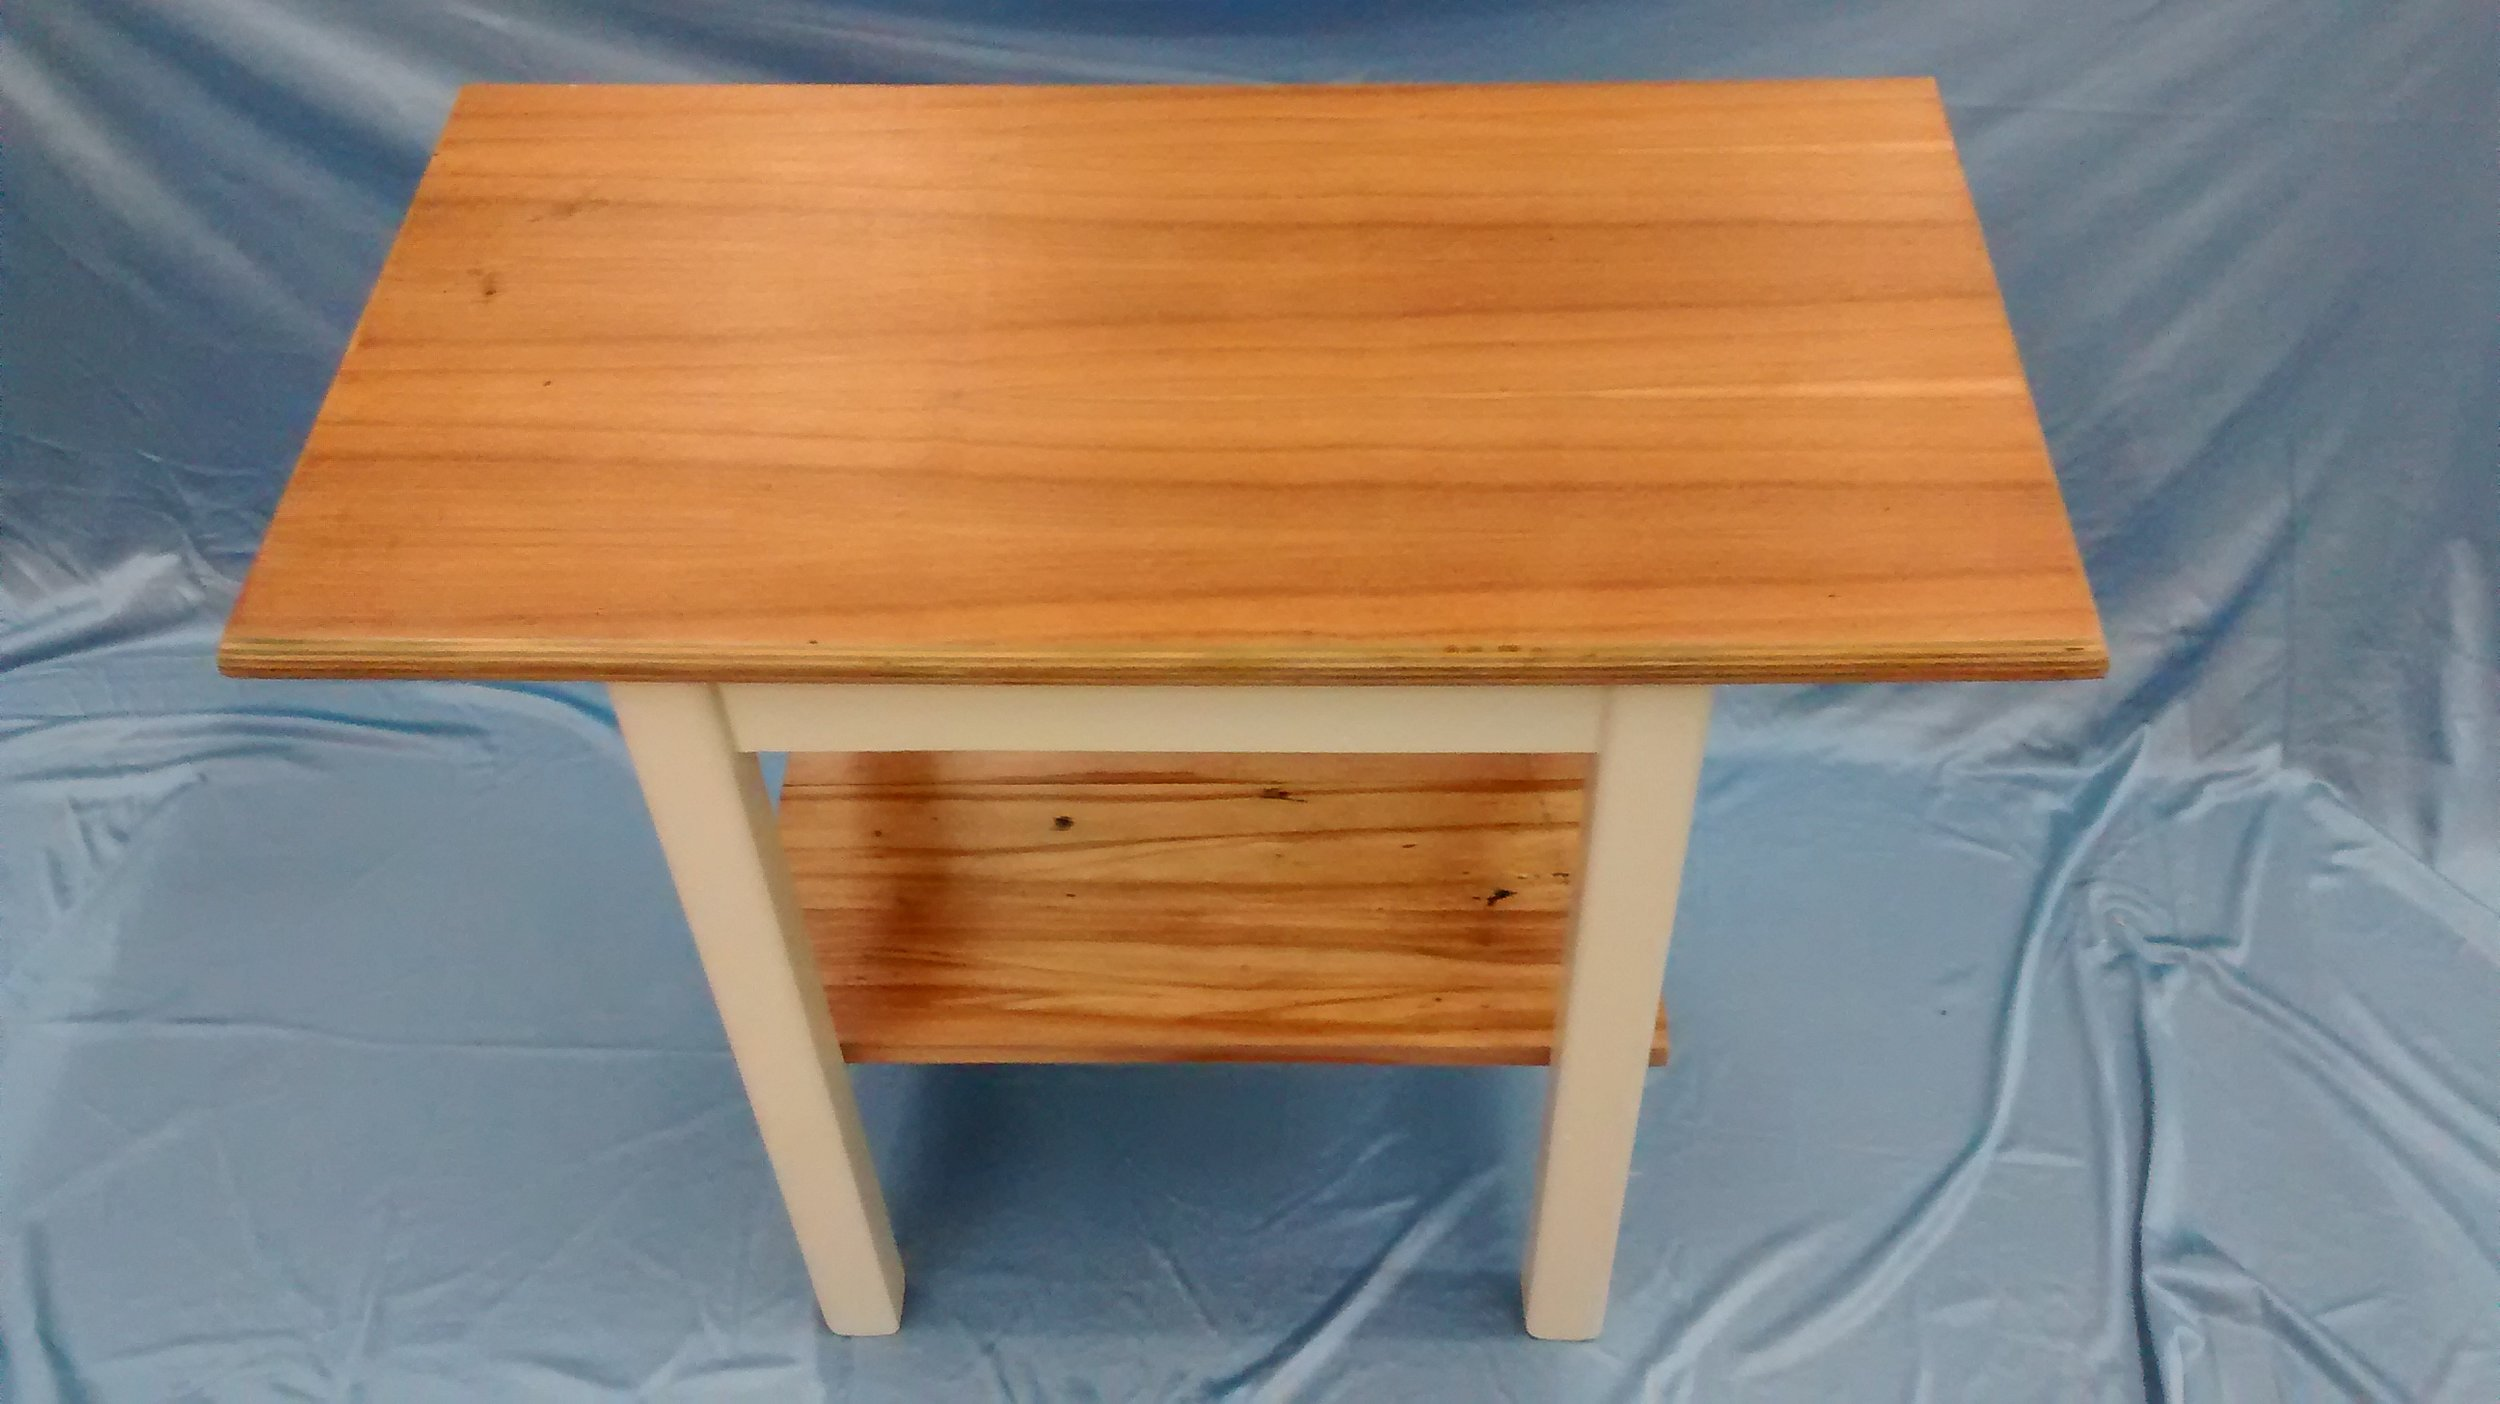 Upcycled End or Side Table with Reclaimed Wood